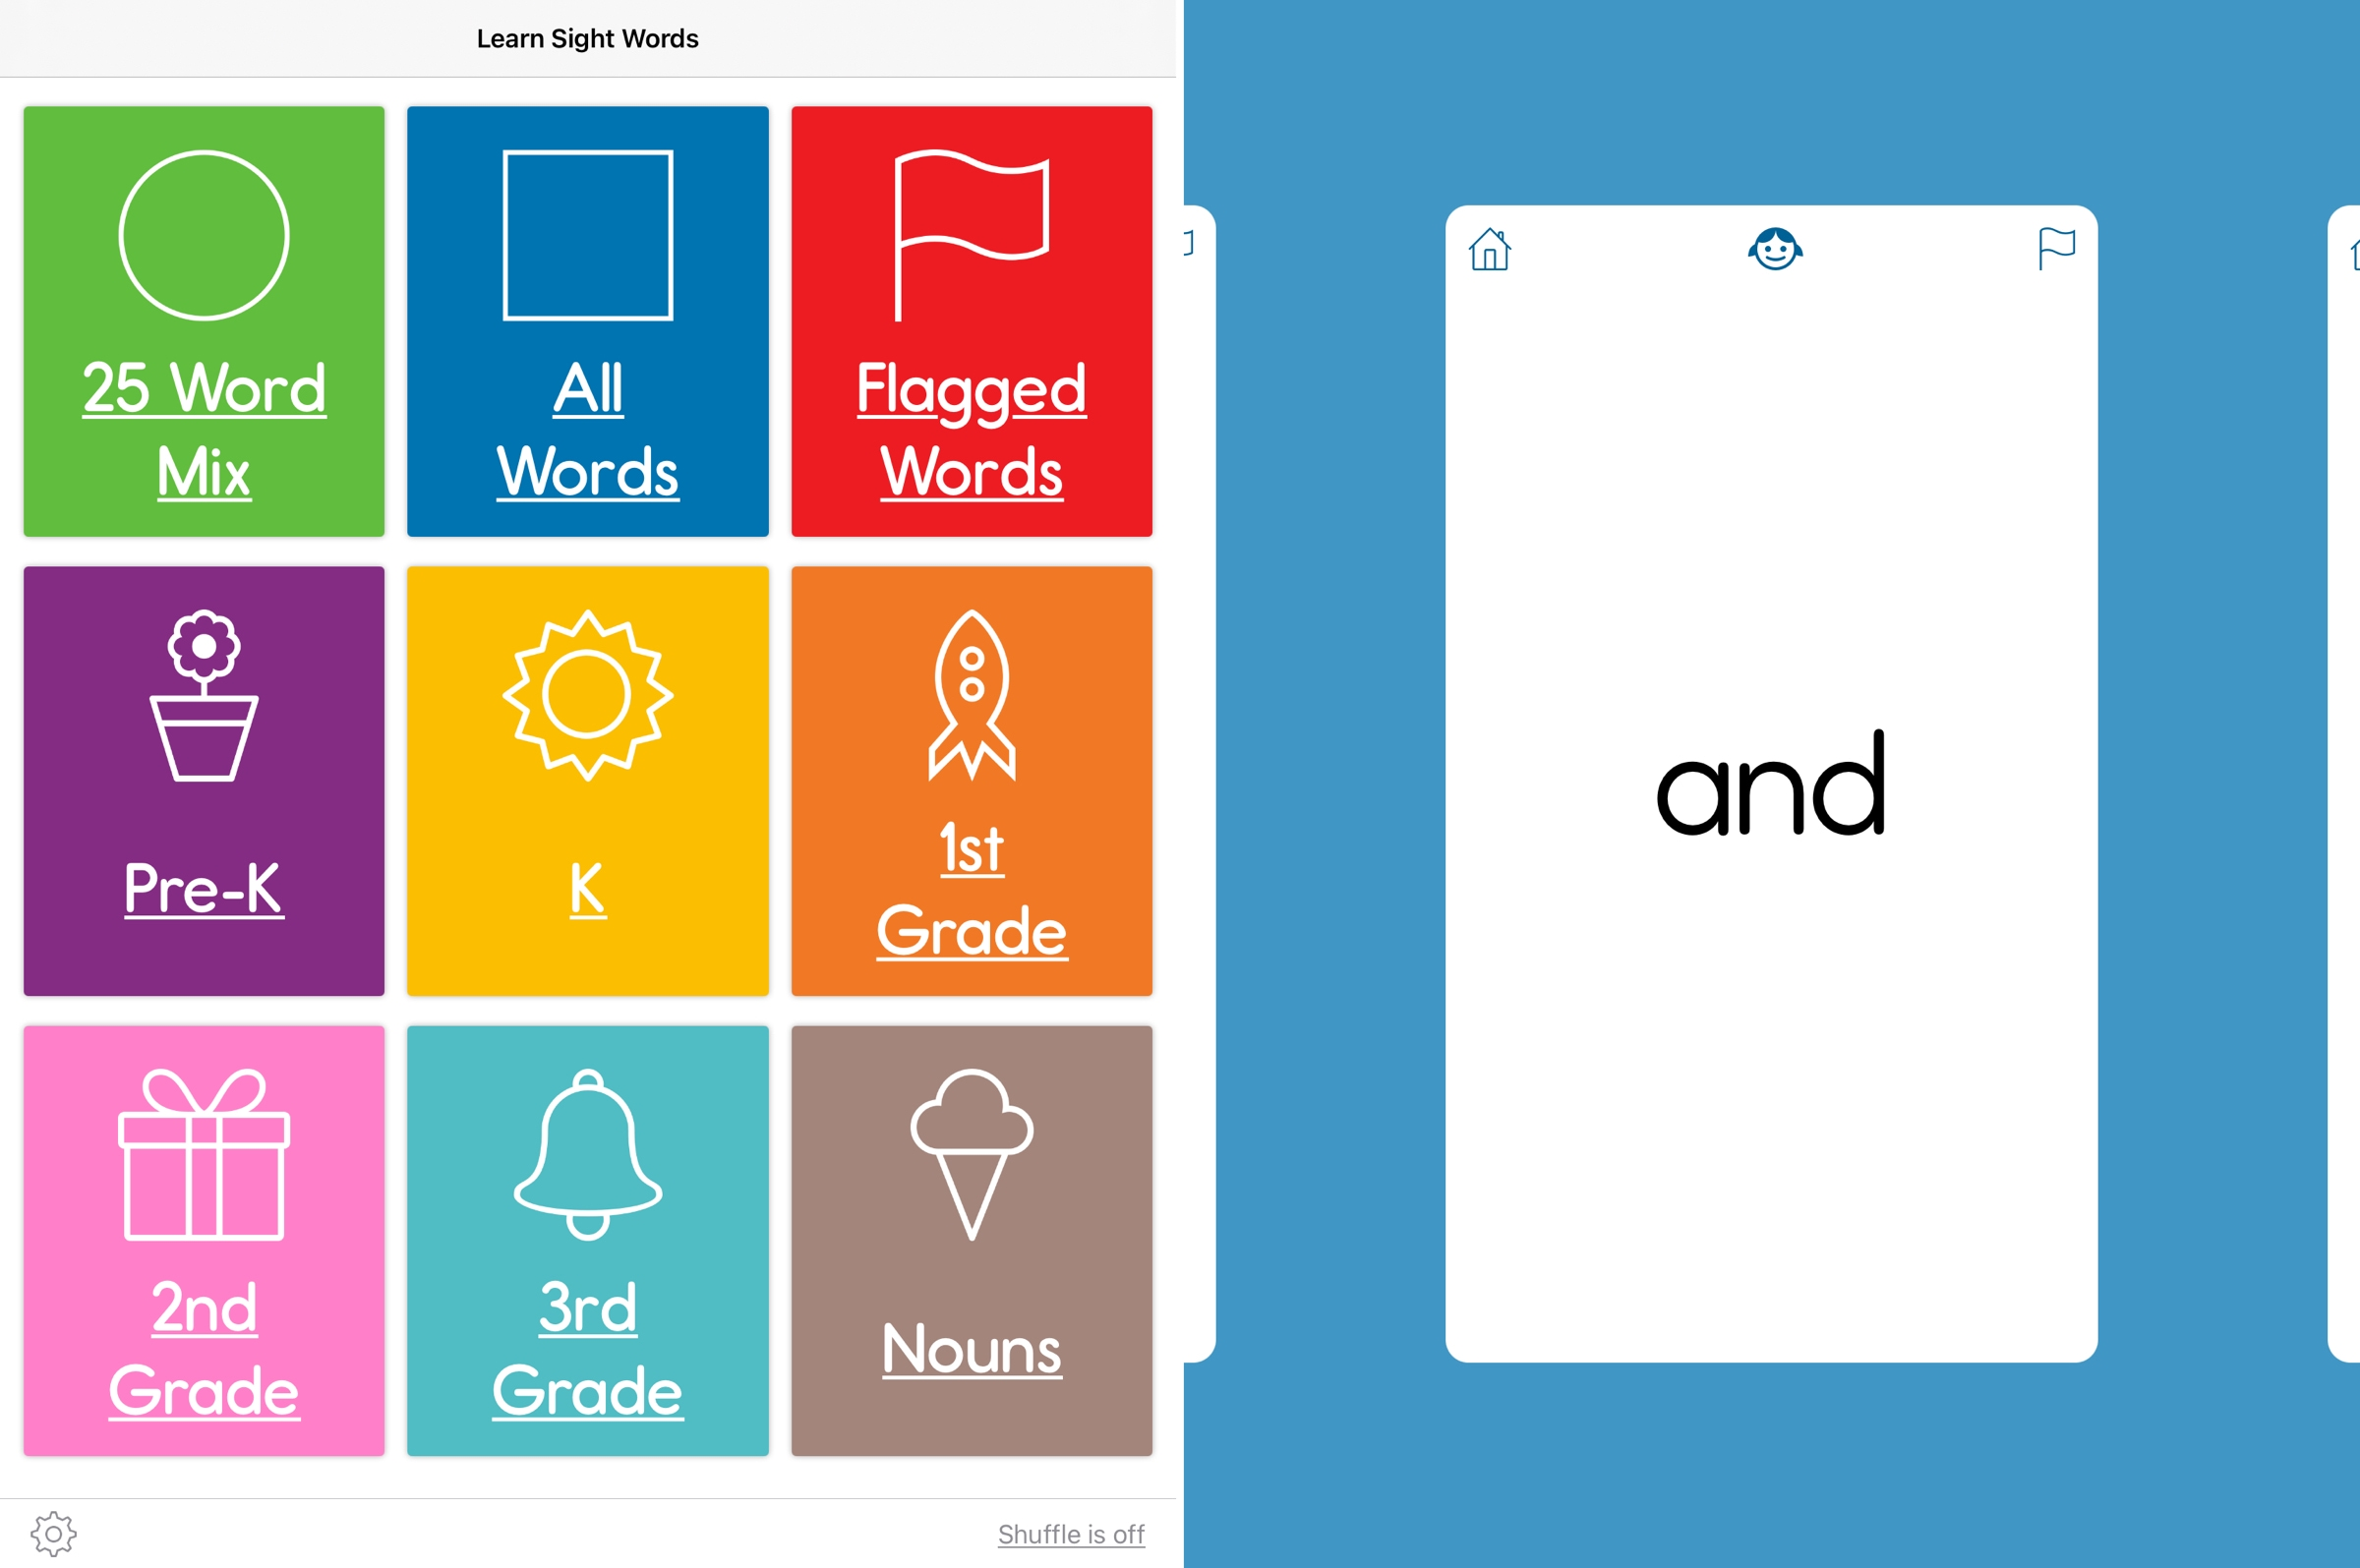 Learn Sight Words on iPad